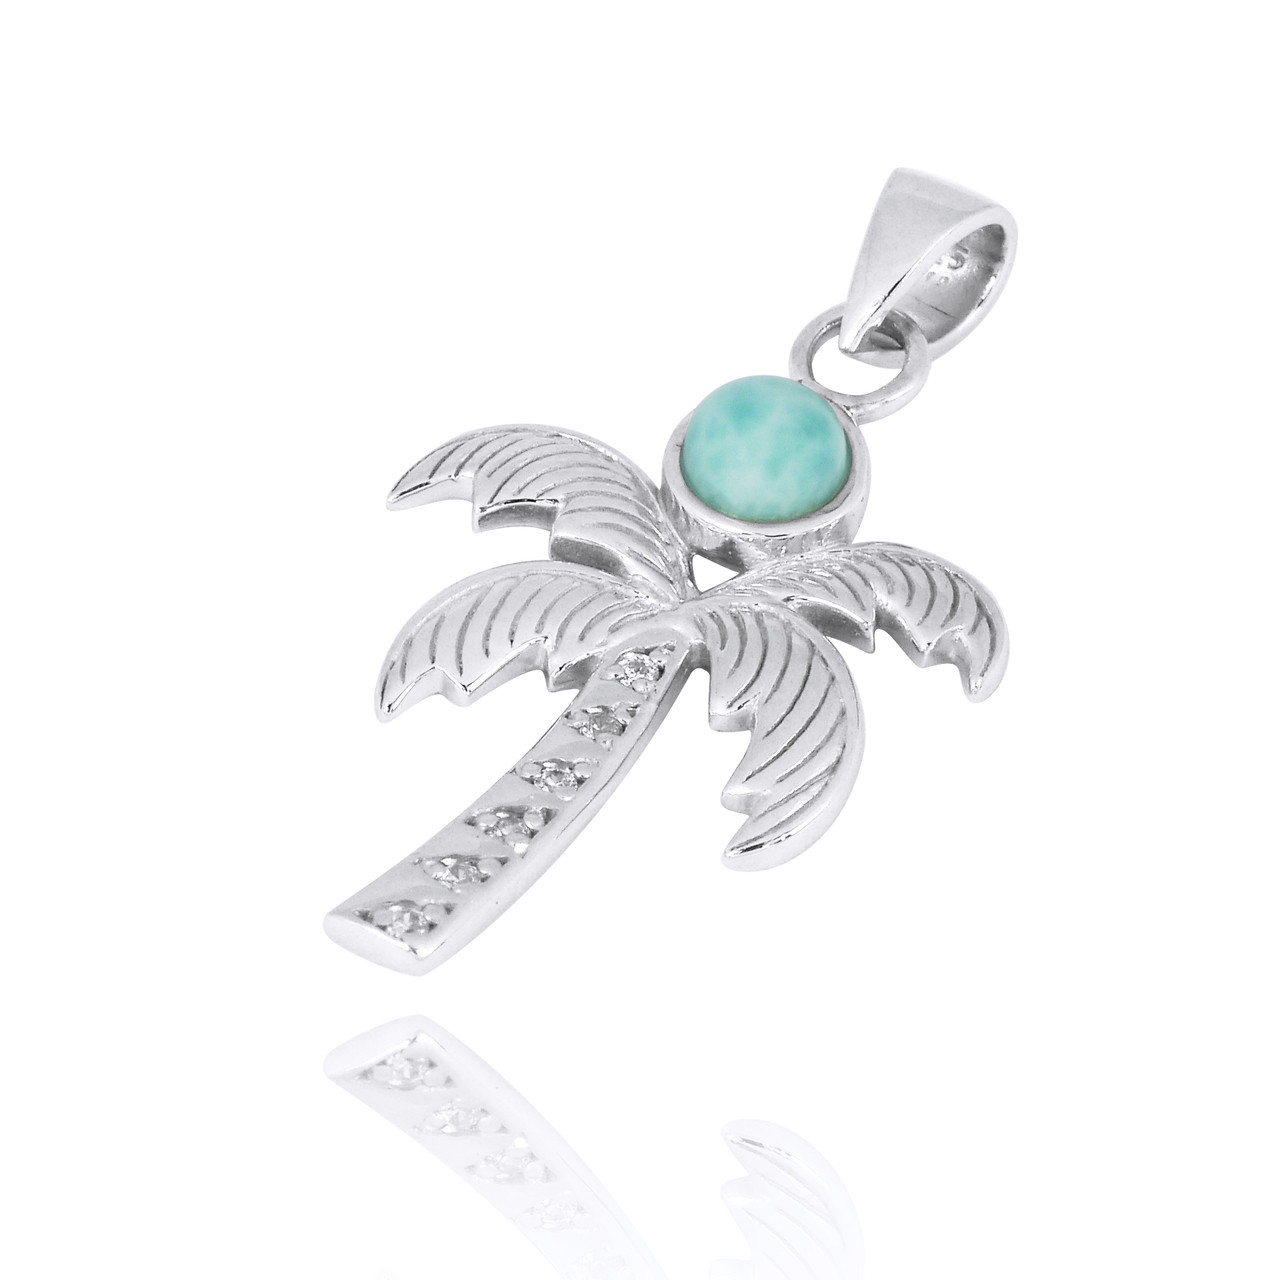 Sterling Silver Themed Jewelry Pendants /& Charms 18 mm 27 mm Larimar Palm Tree Pendant